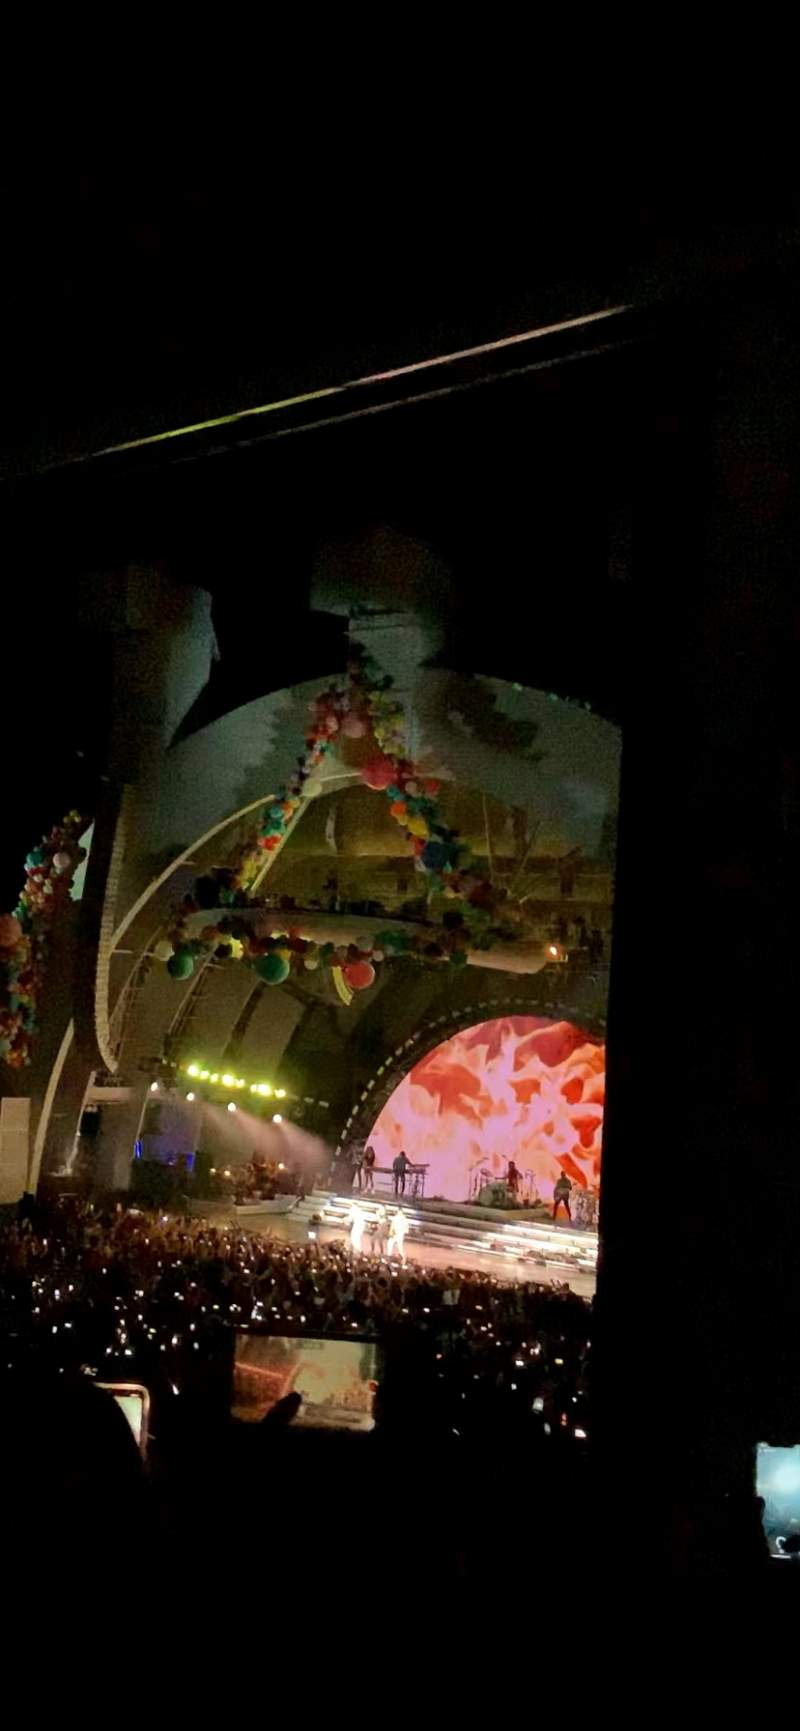 Seating view for Hollywood Bowl Section F3 Row 4 Seat 30 and 32